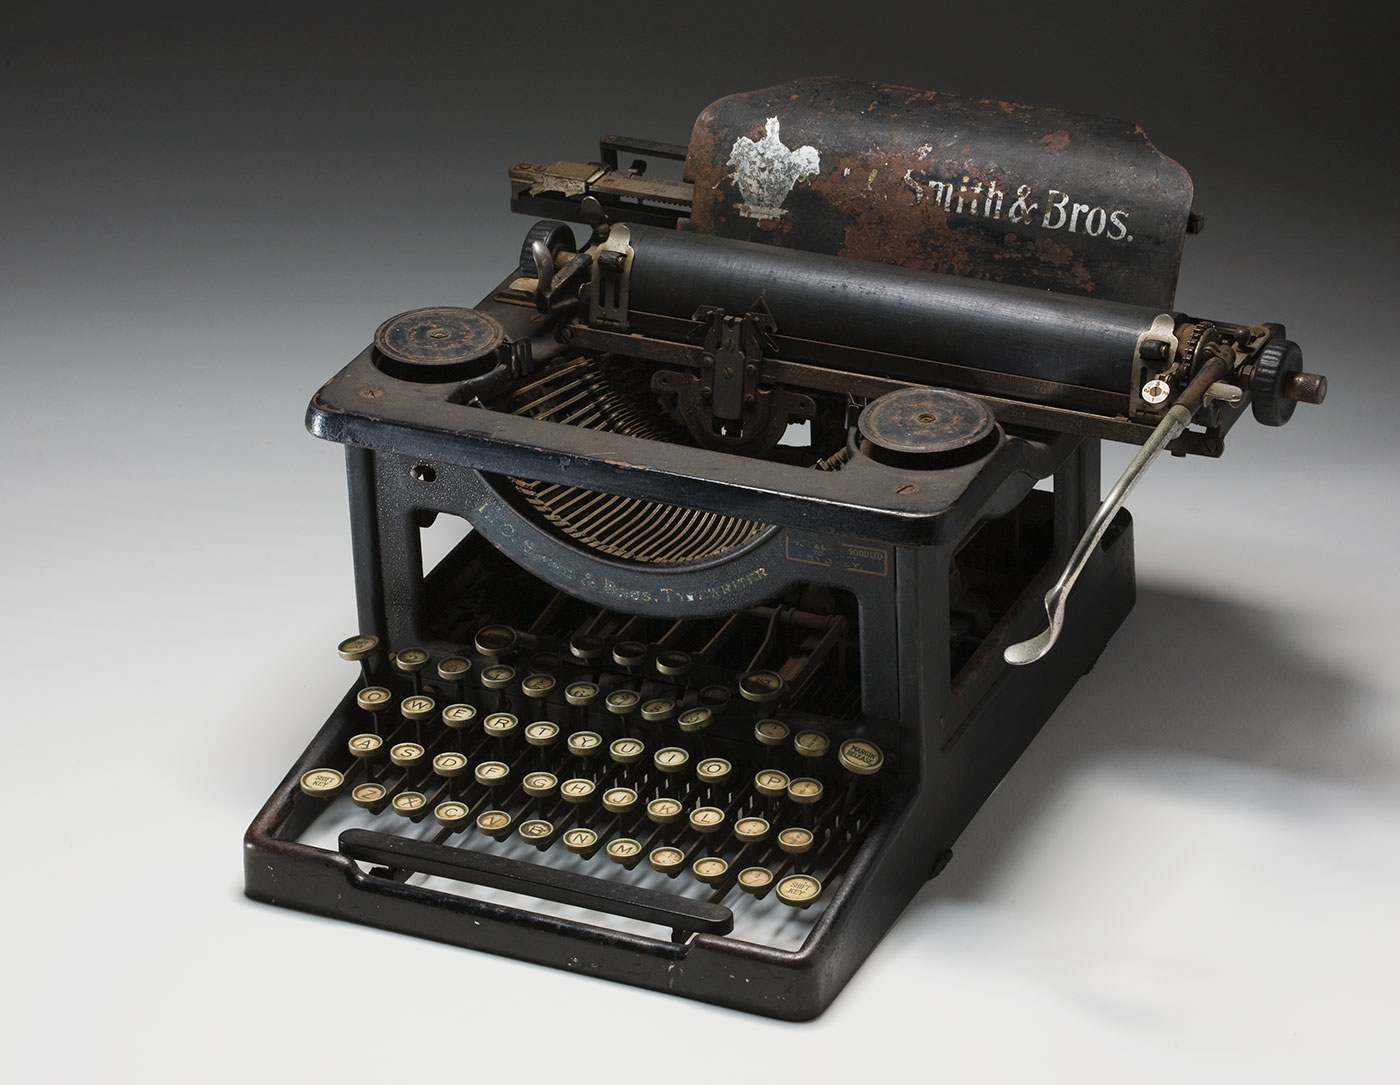 Black painted, steel framed, 'visible' typewriter with circular white pre-decimal keys. 'L.C. SMITH & BROS TYPEWRITER' is printed along an inverted arch across the front, which cradles the typeface heads. It is rusty and the ribbon is missing. - click to view larger image